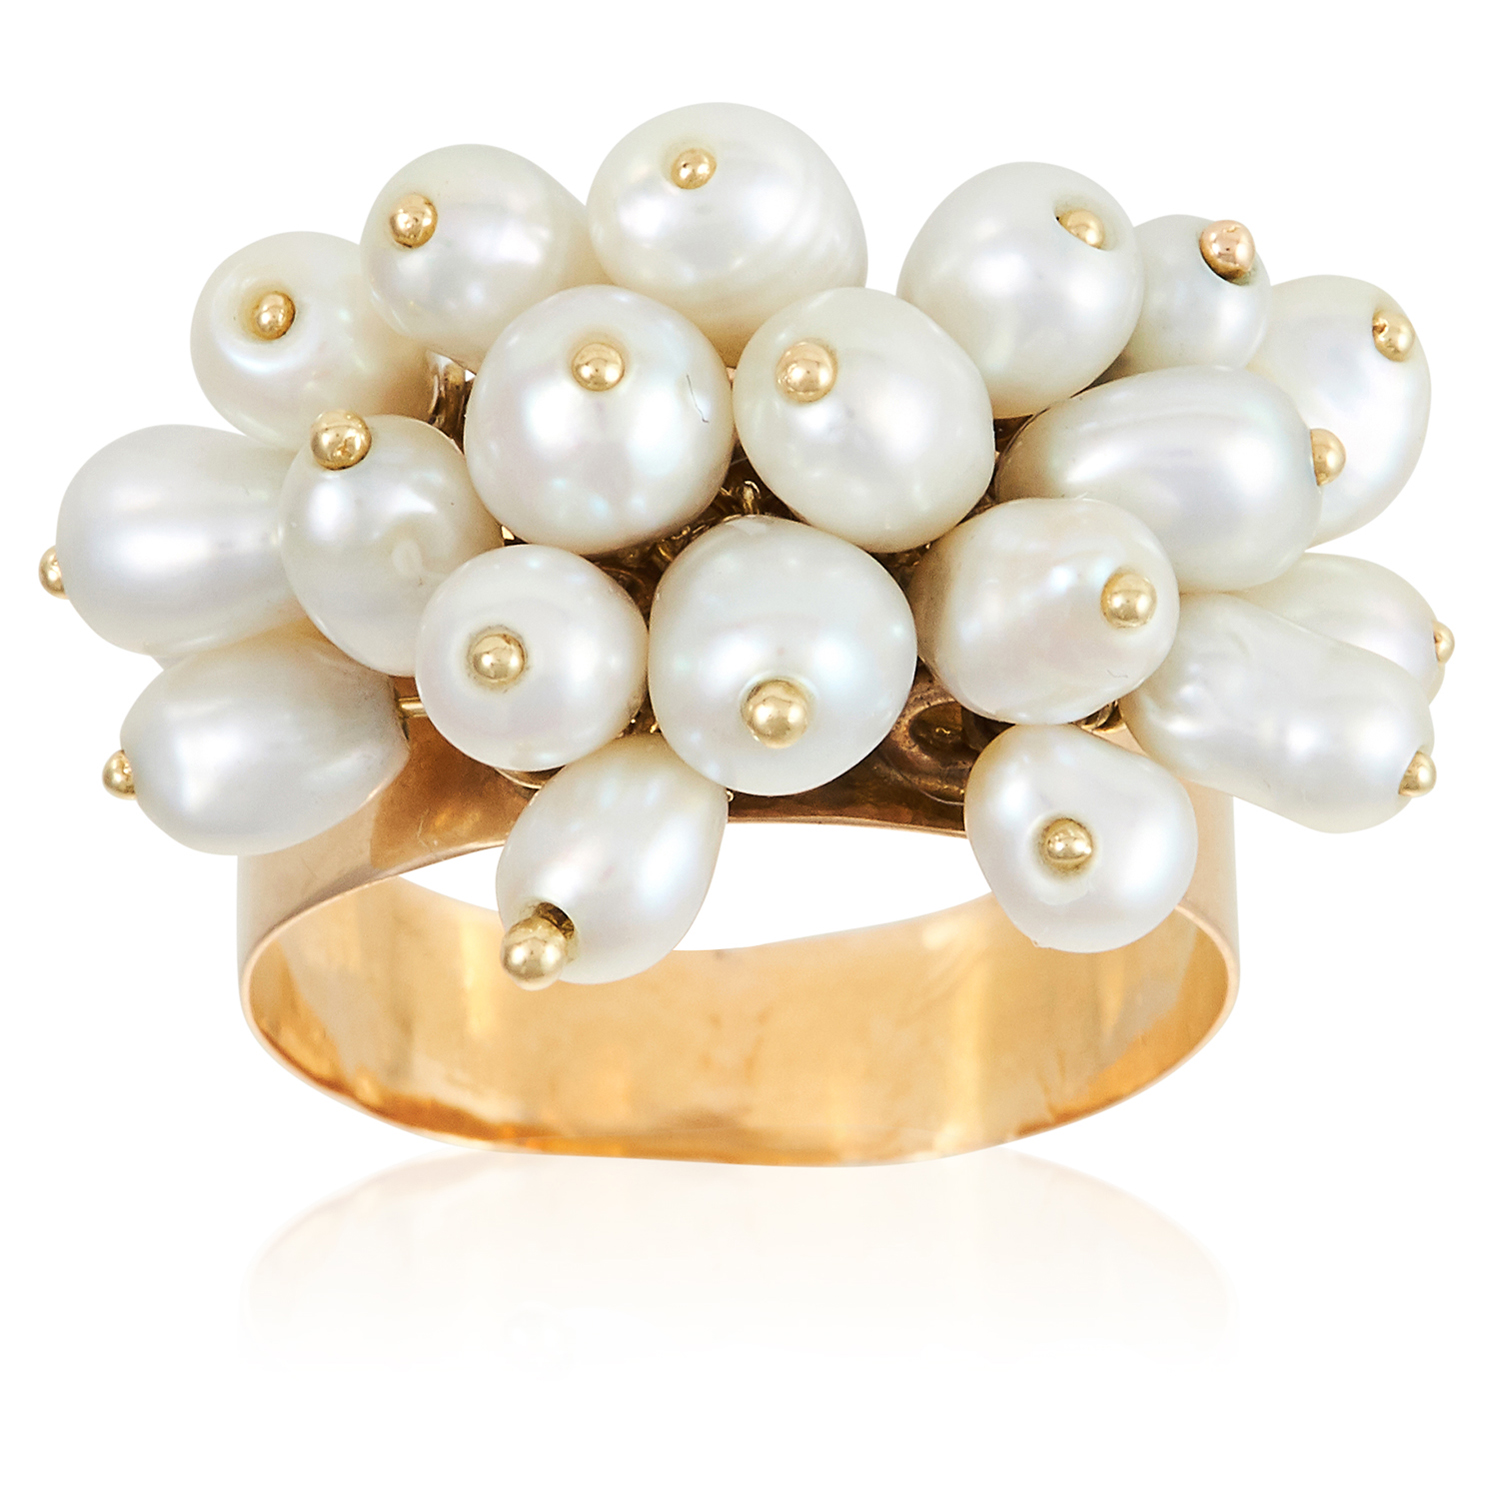 Los 332 - A PEARL RING in 18ct yellow gold, jewelled with articulated pearl tassels, stamped 750, size O /